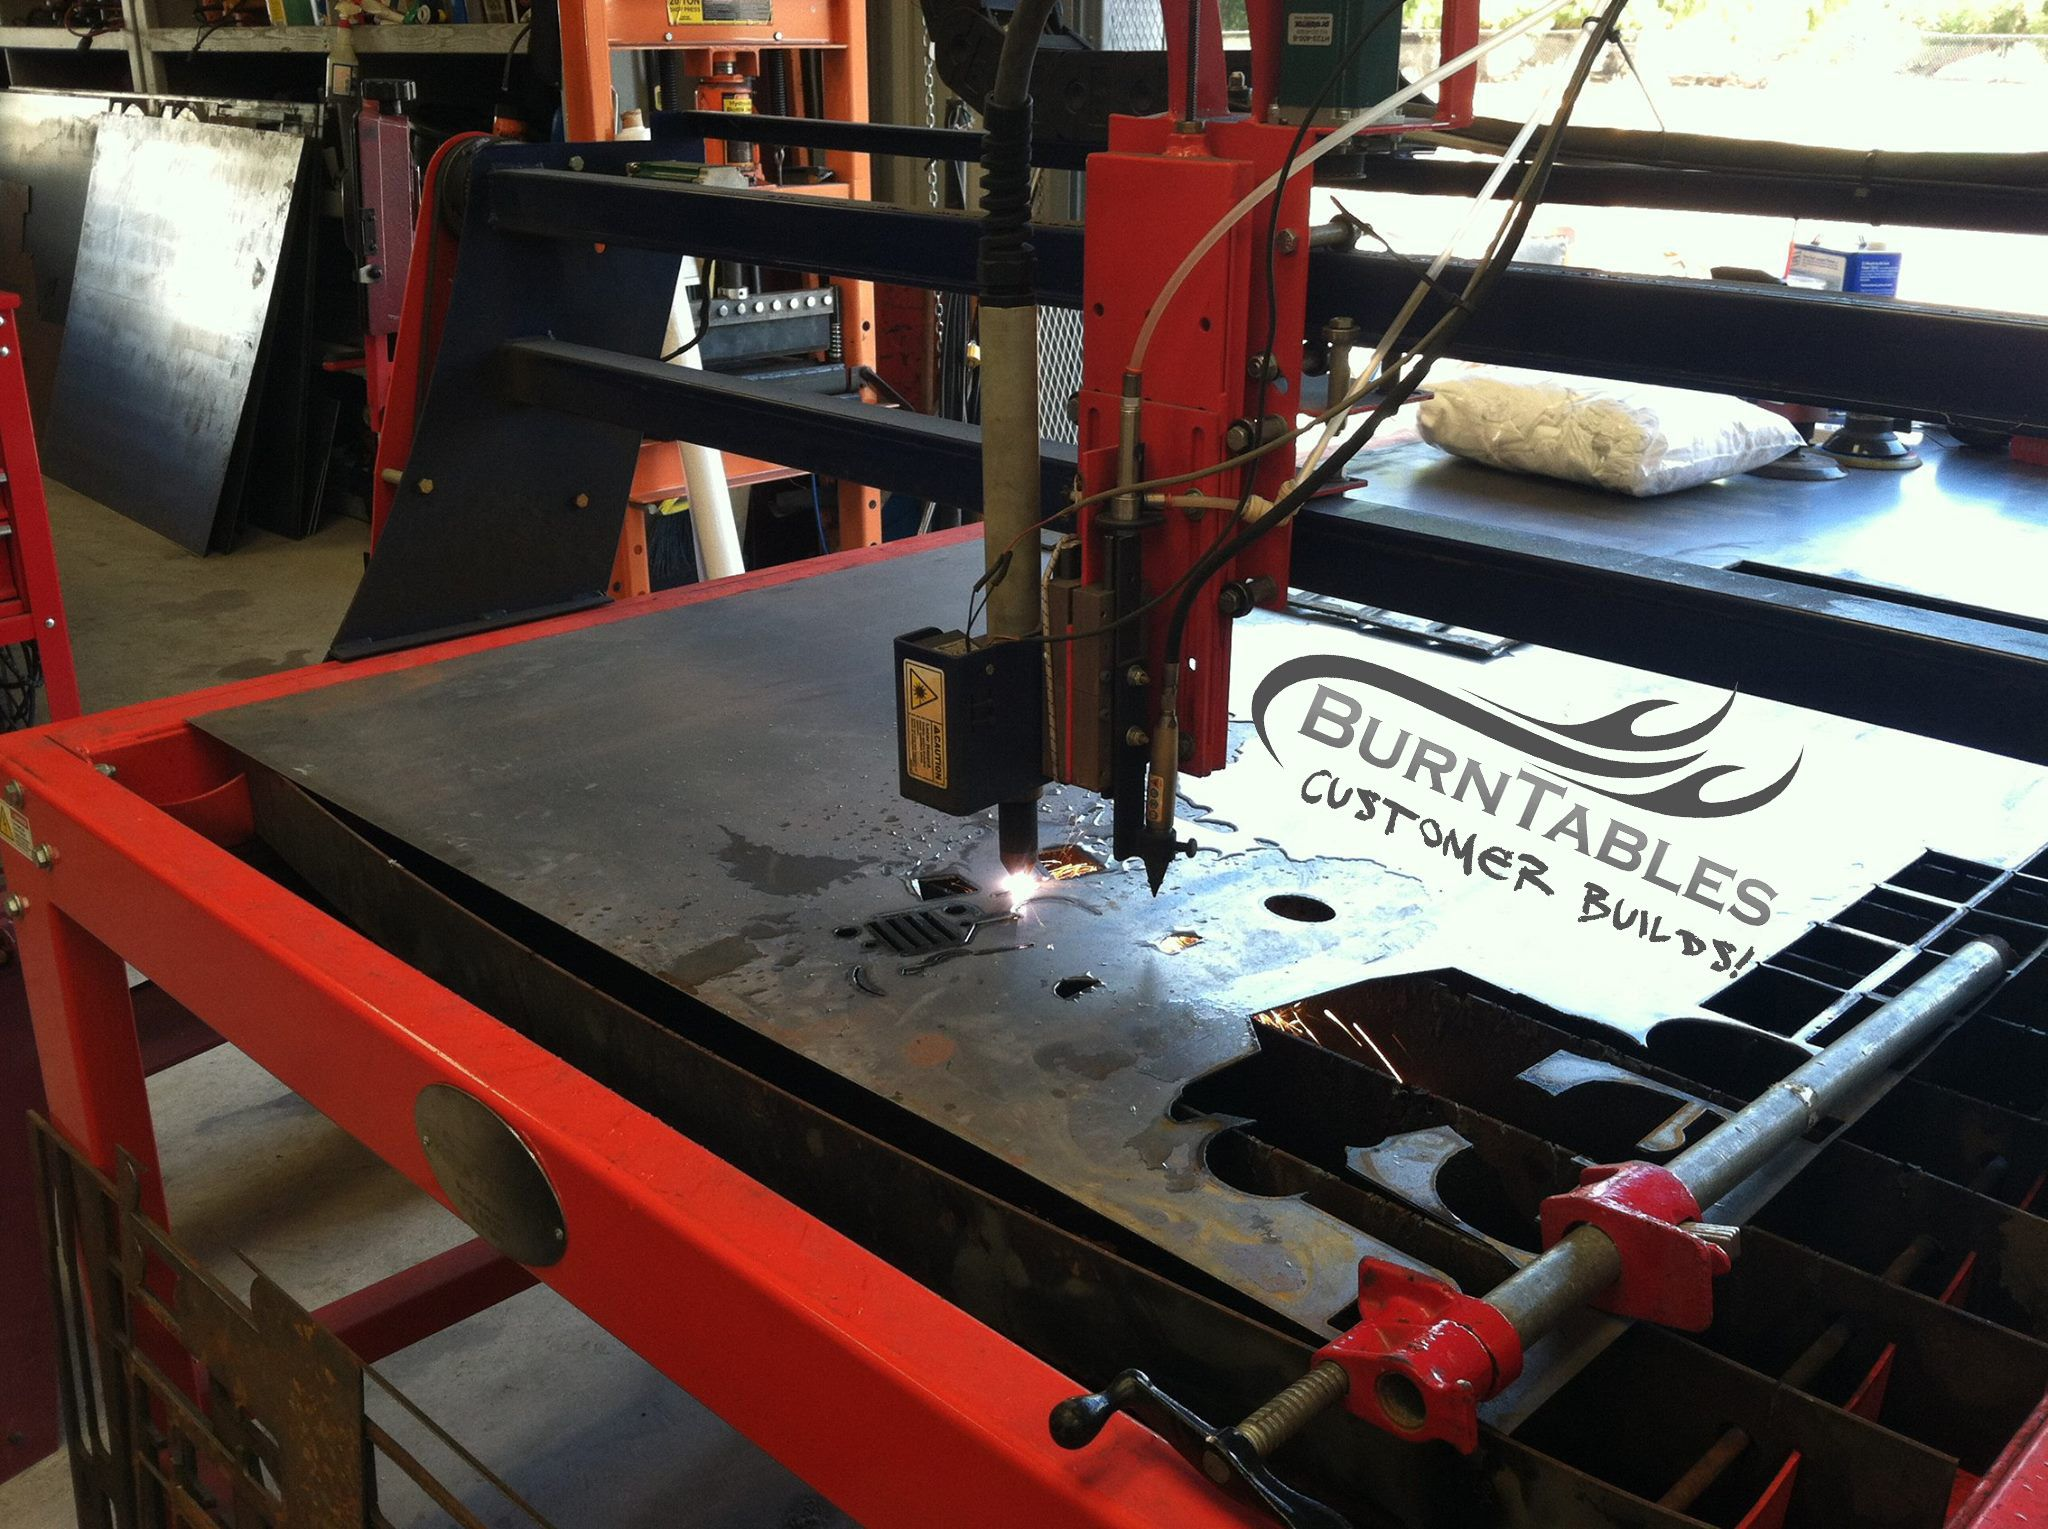 Cnc Burntables Plasma Table With Water Tray Cnc Art